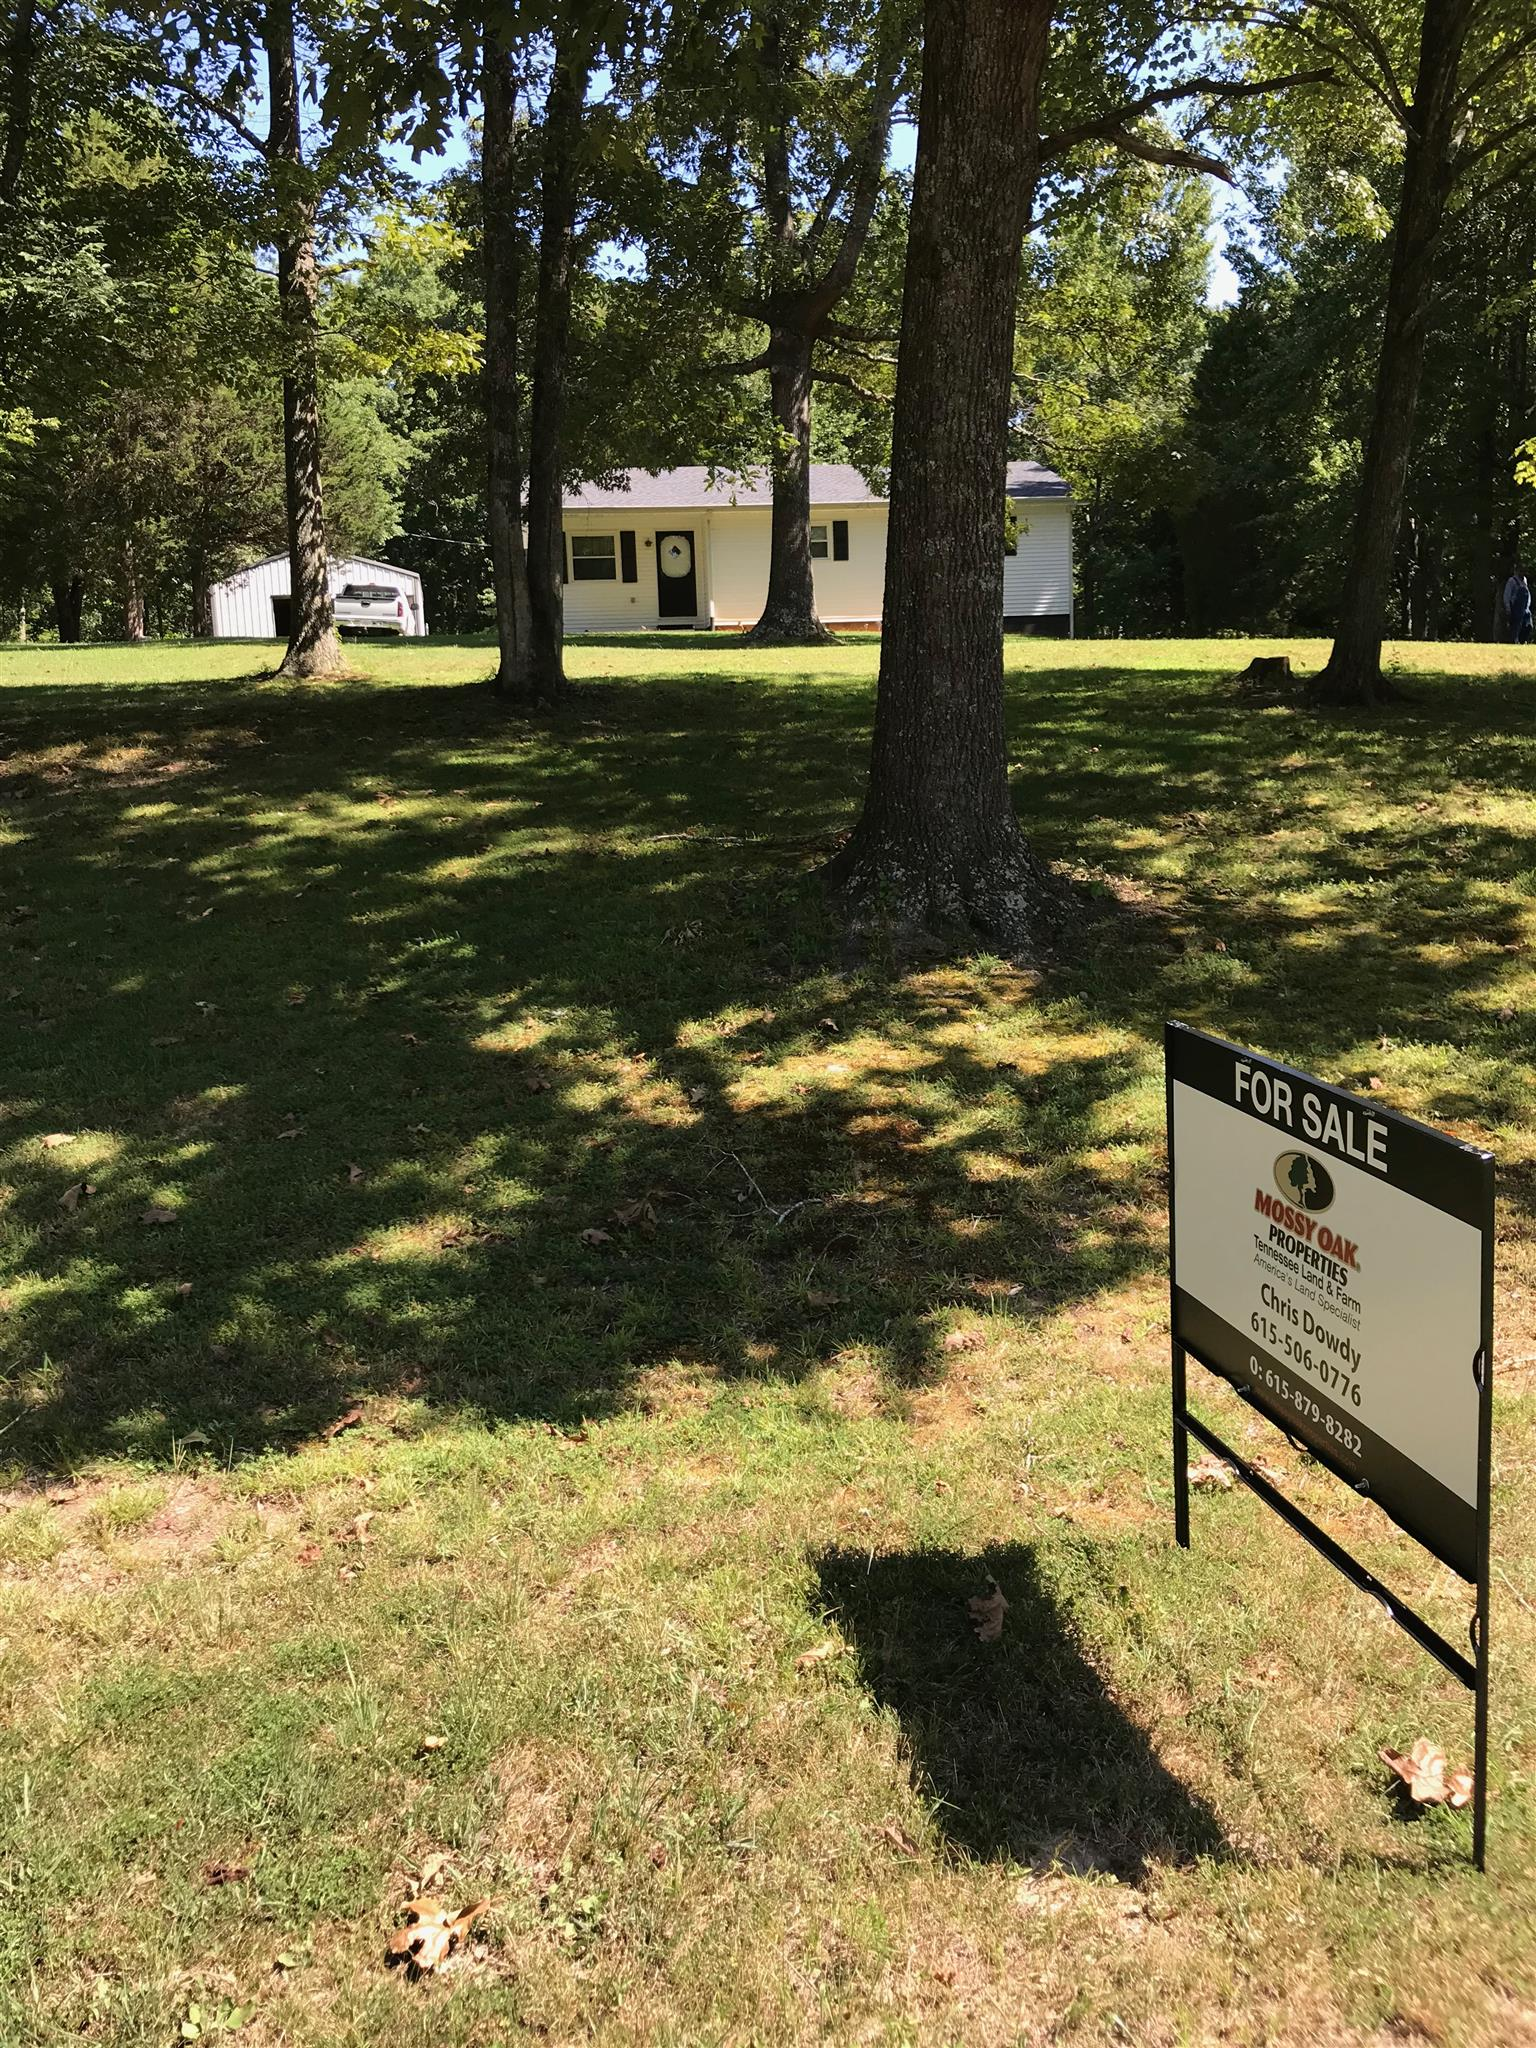 1075 Sandy's Camp Rd, Big Sandy, TN 38221 - Big Sandy, TN real estate listing